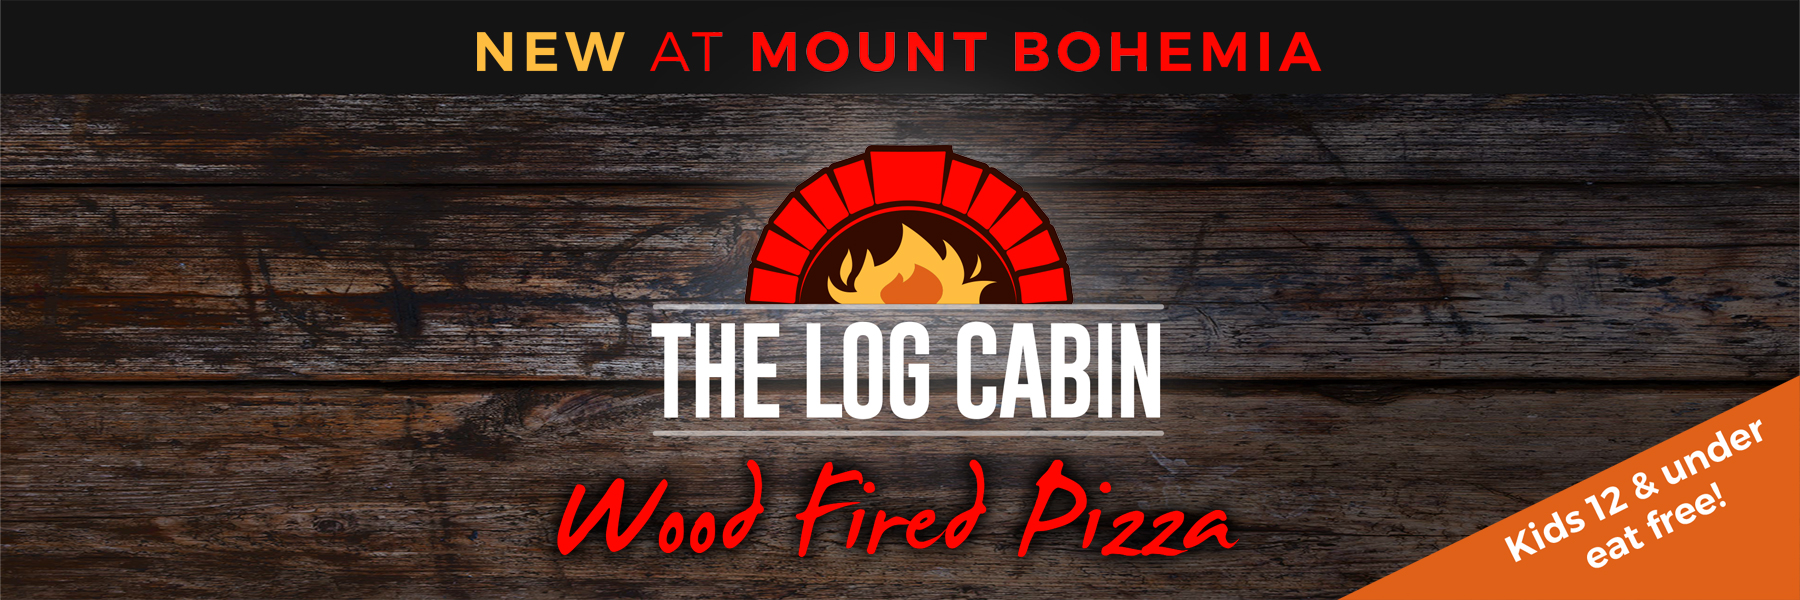 the log cabin wood fired pizza